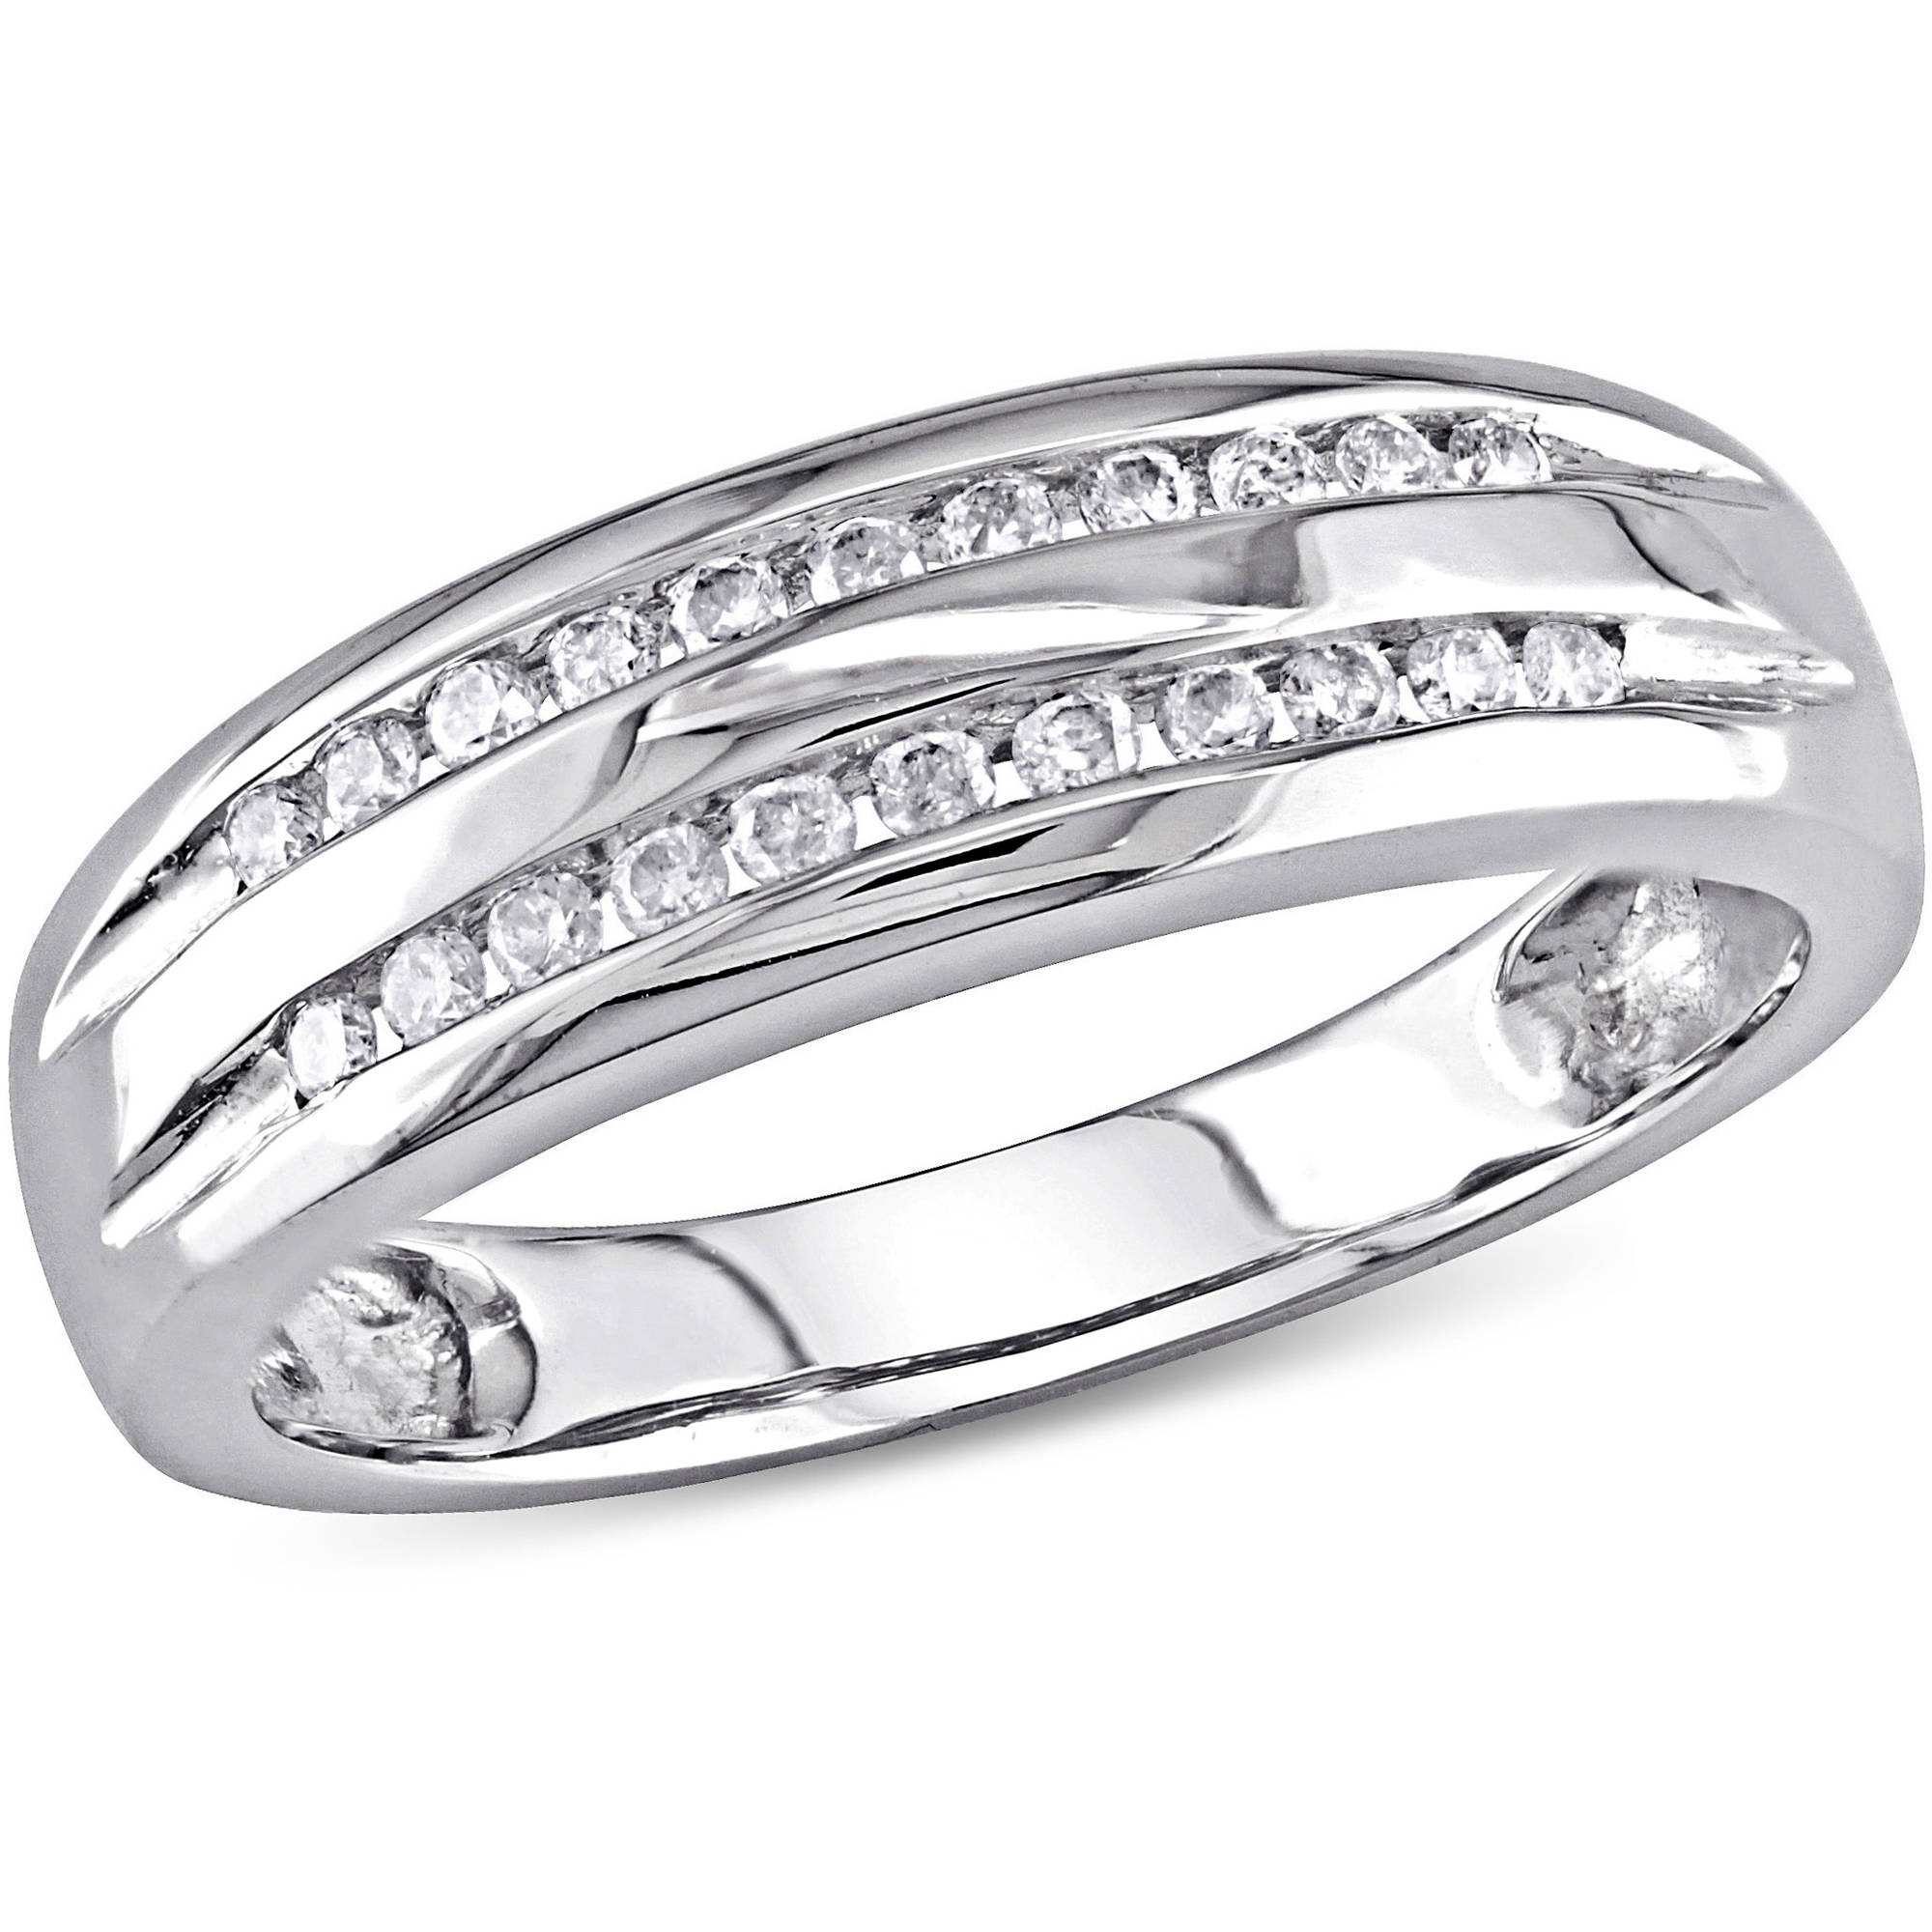 half engagement jewelry sterling pave double eternity bling silver byj band cz ring row rings